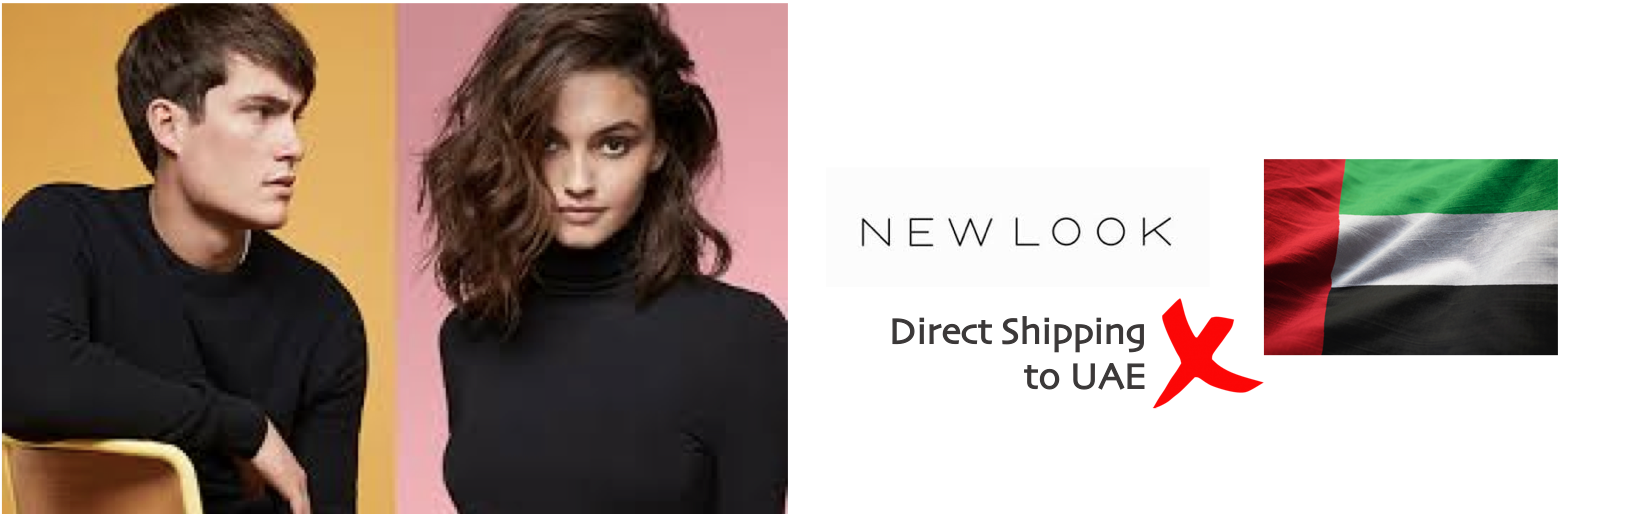 shop New Look ship to uae